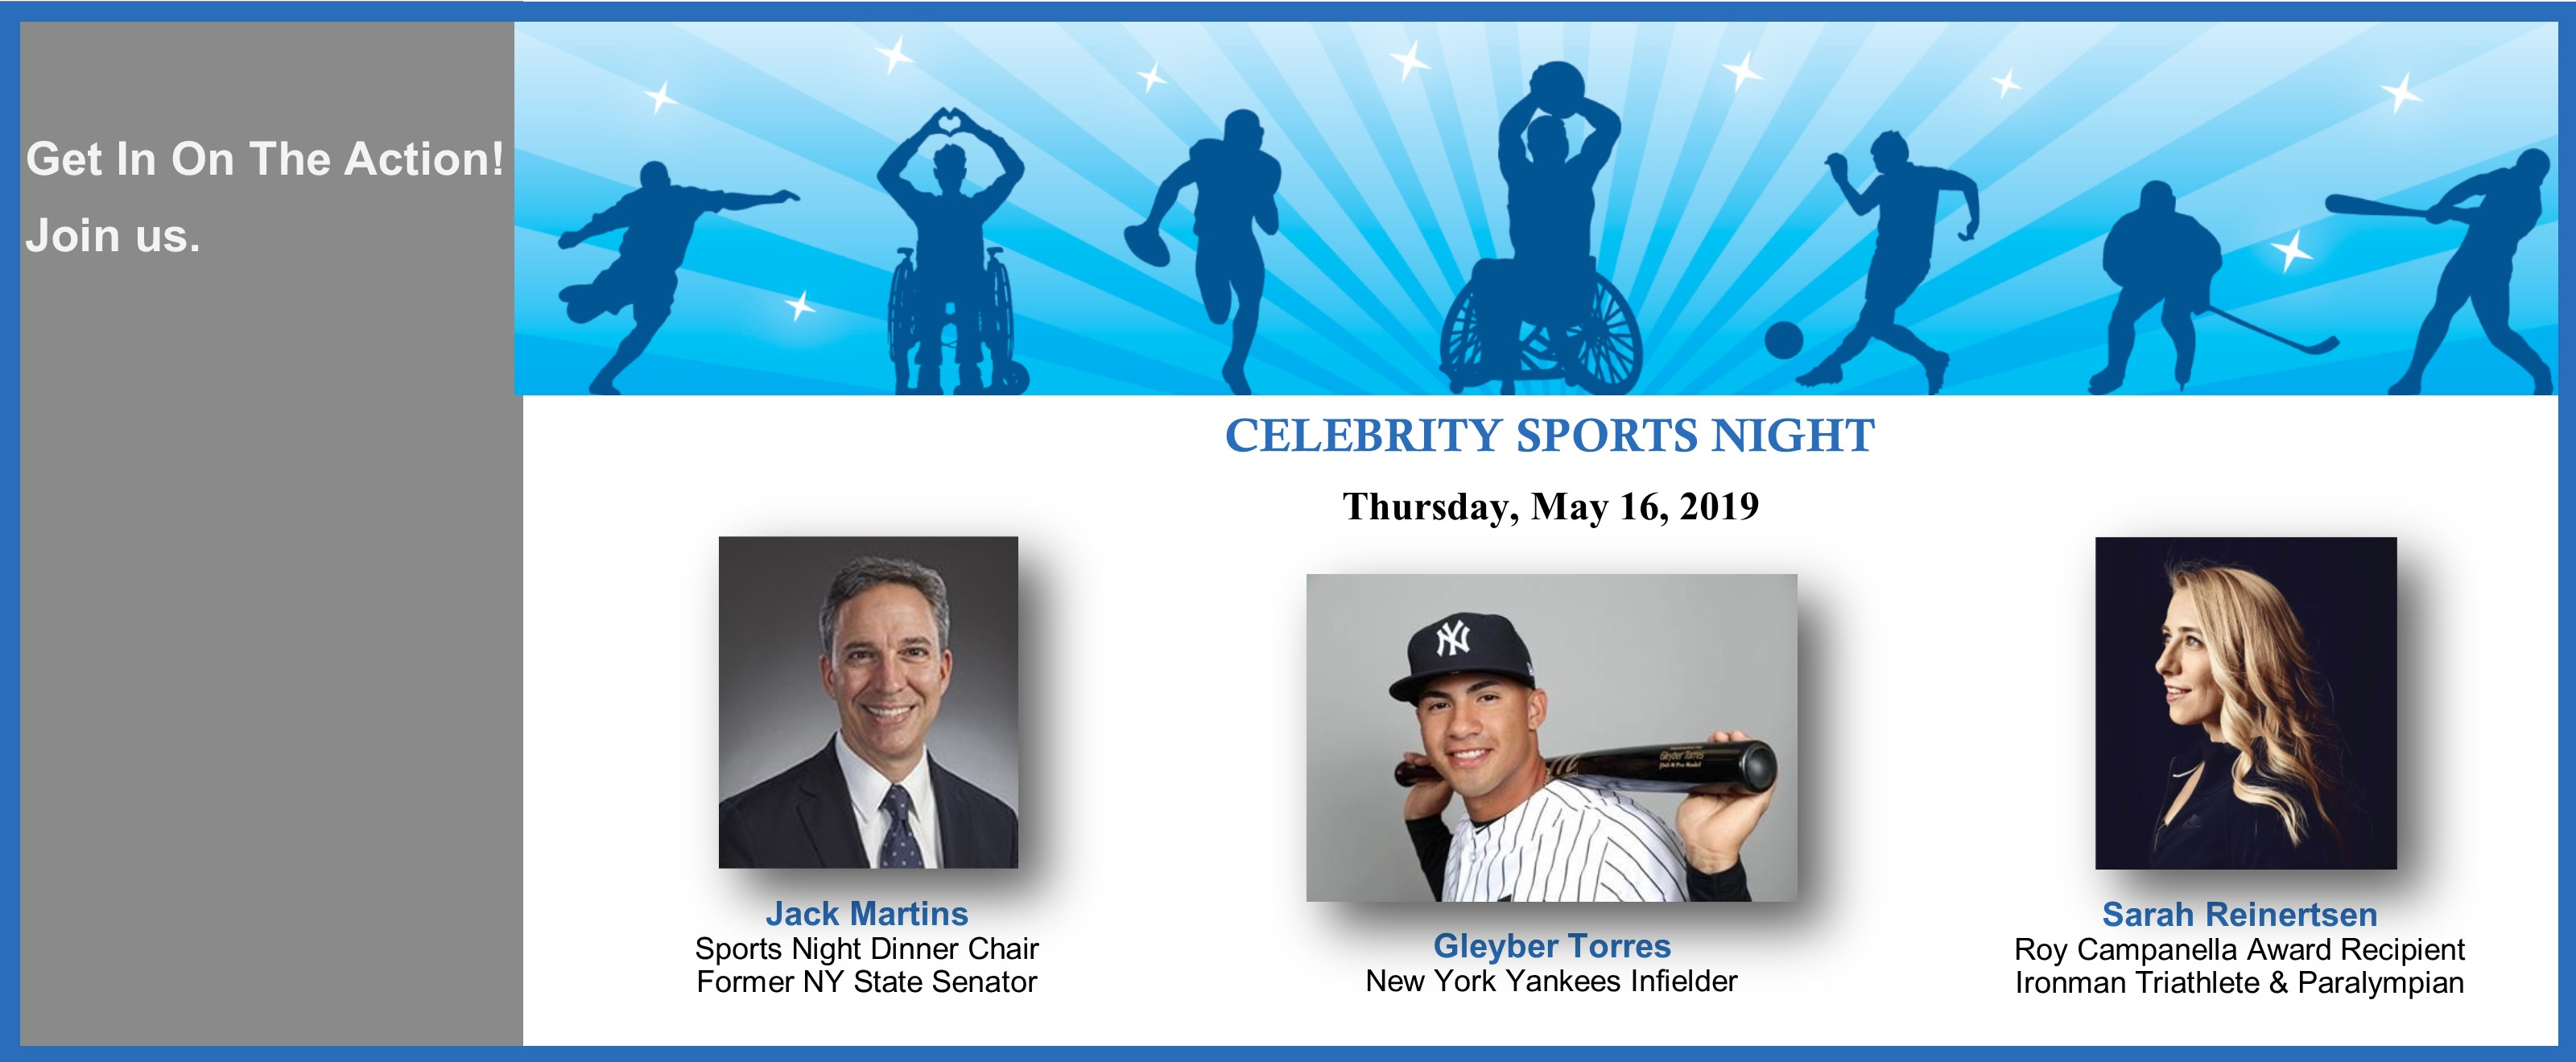 Get in on the actions! Join us. Celebrity Sports Night, May 16, 2019. Featuring Gleyber Torres, NY Yankees, Jack Martins, Dinner Chair and Sarah Reinertsen, Ironman Triathlete and Paralympian.